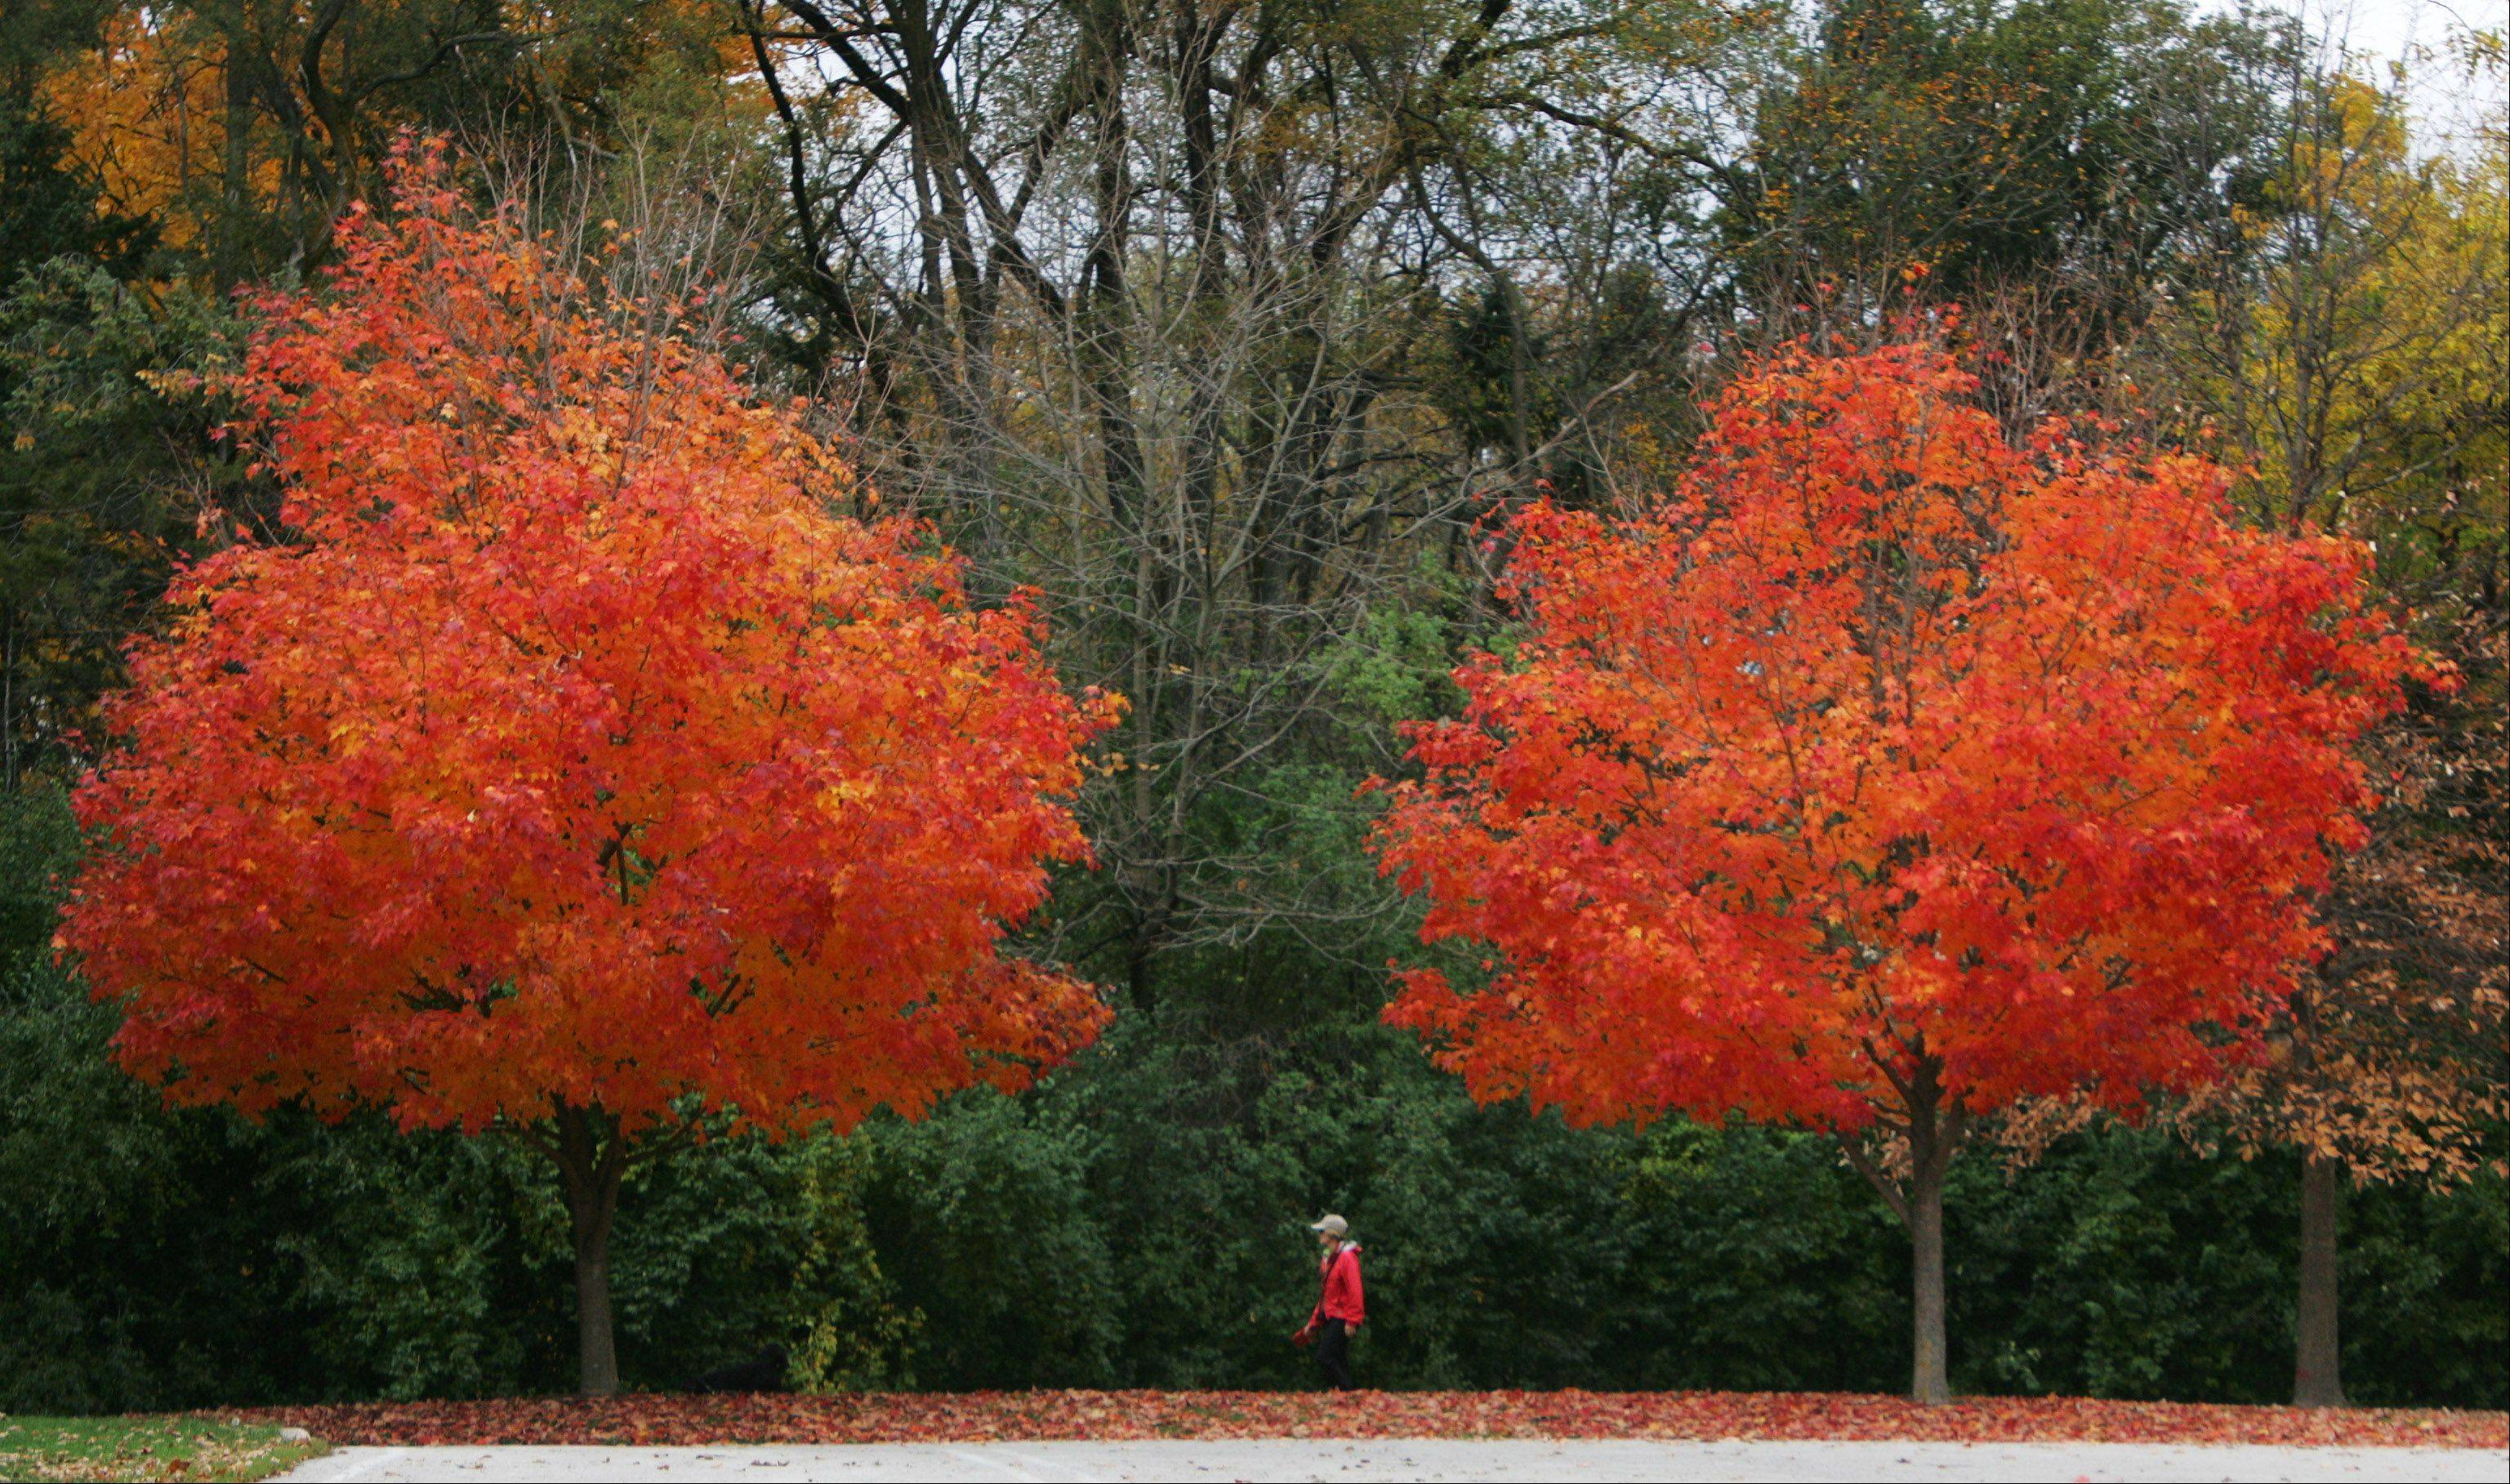 A woman walks her dog along a path in Adler Park in Libertyville. Fall scenes at Adler Park and Independence Grove Forest Preserve in Libertyville for the GLMV chamber guide.